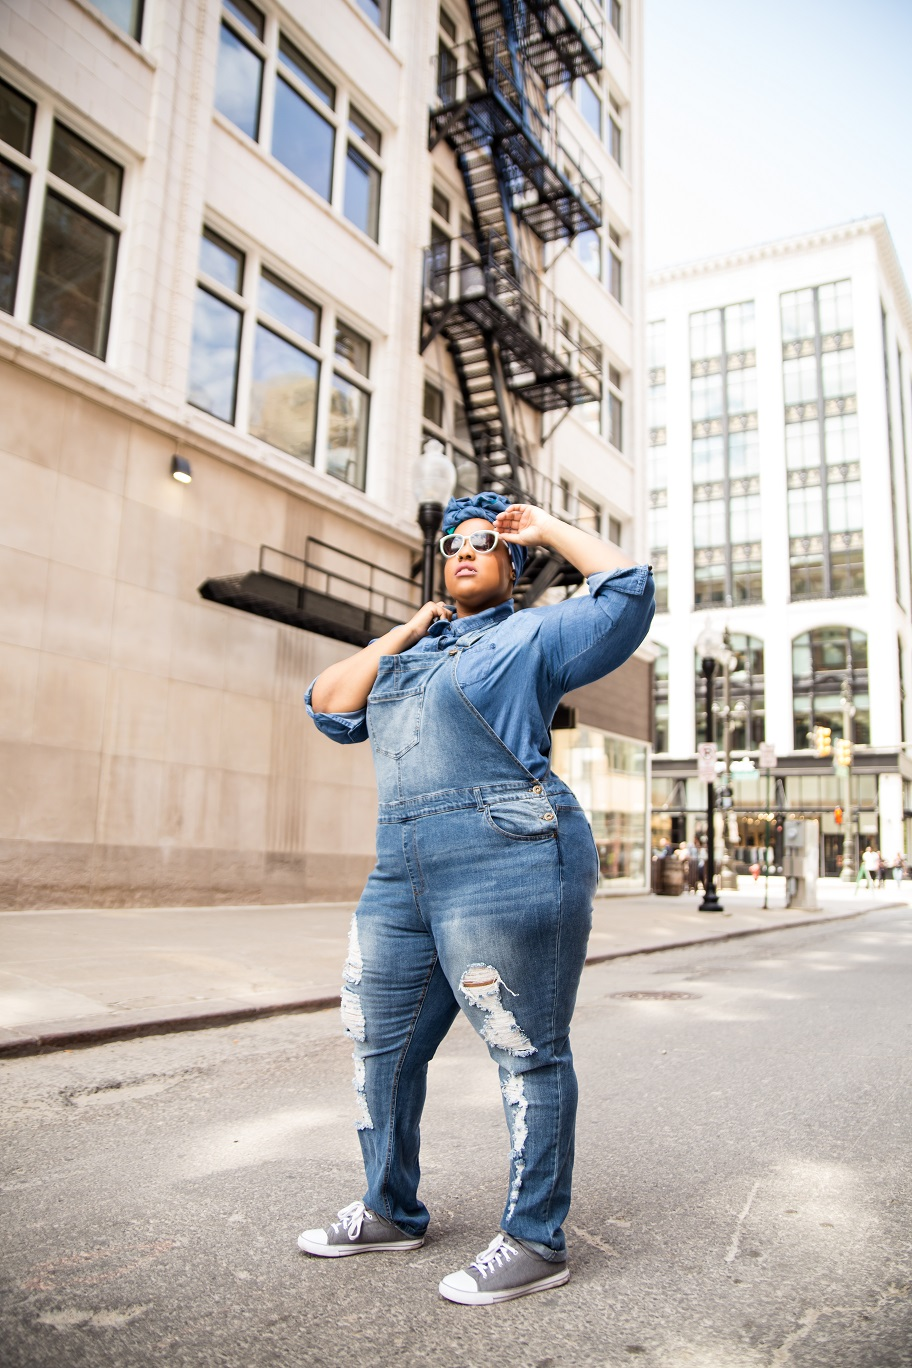 Leah-Vernon-Plus-Size-Model-Detroit-Blogger-Muslim-Girl-Body-positive